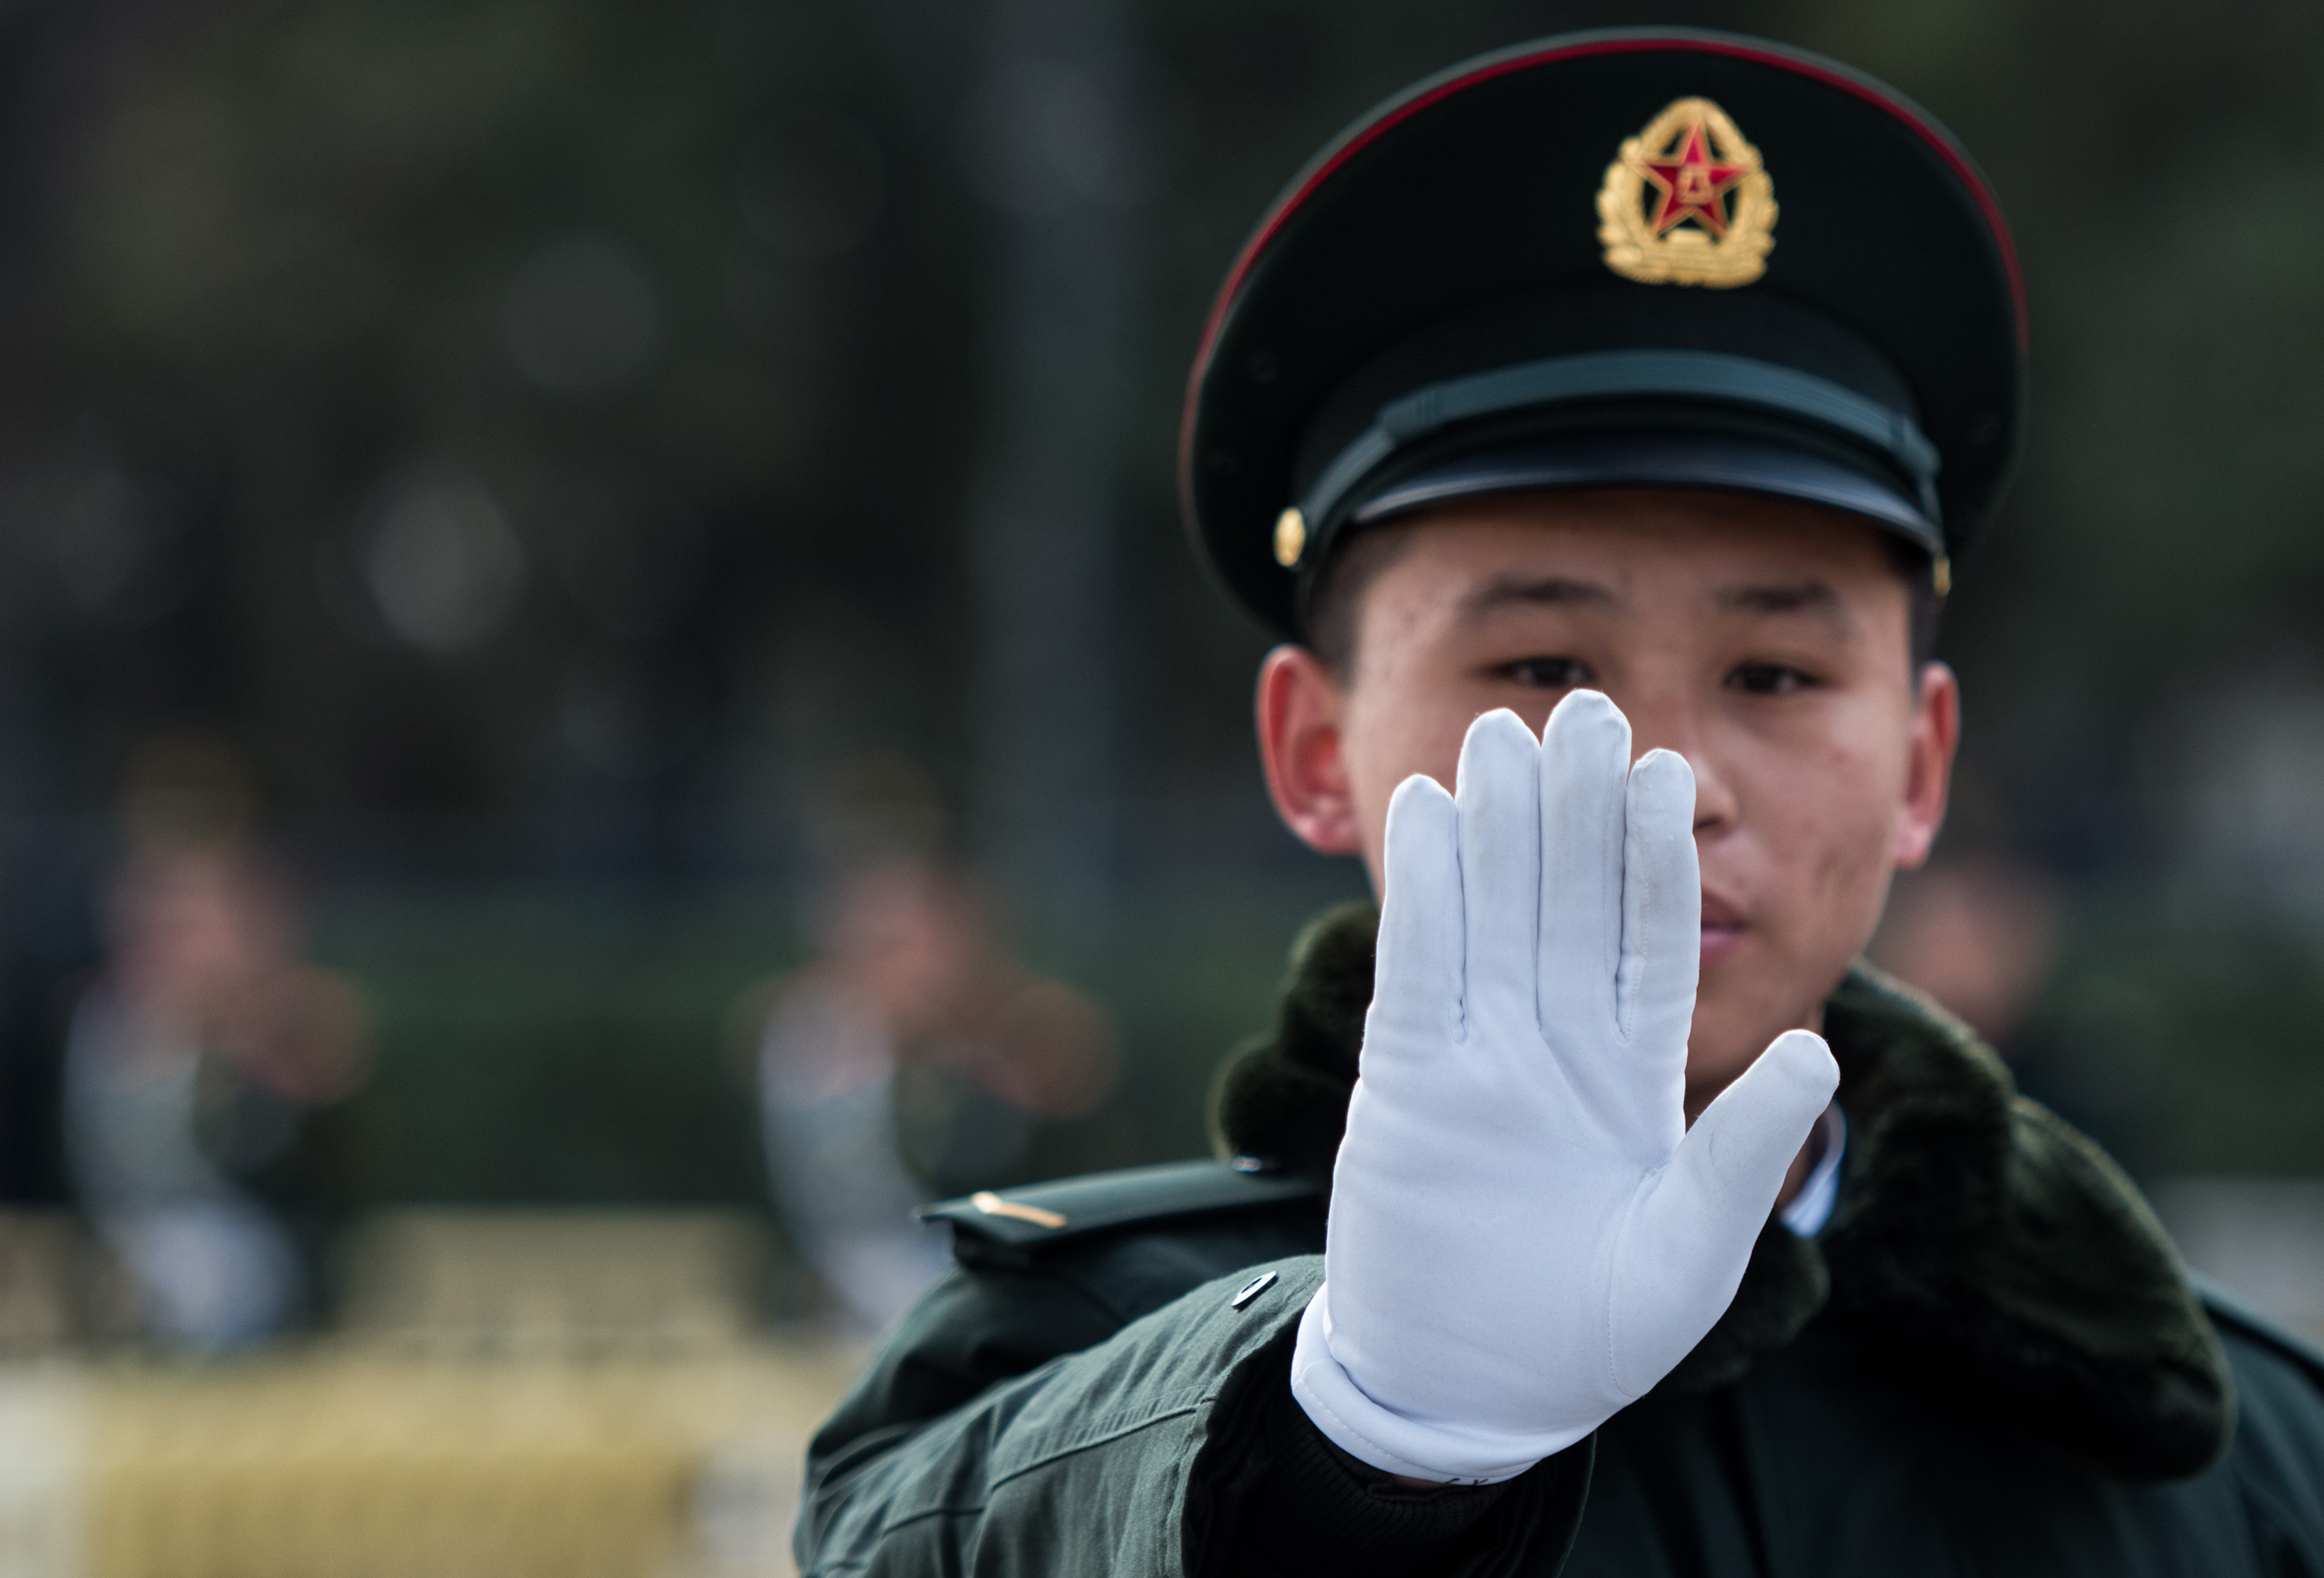 CHINA SECURITY: Twitter's First China Director Signals Censorship and State Control